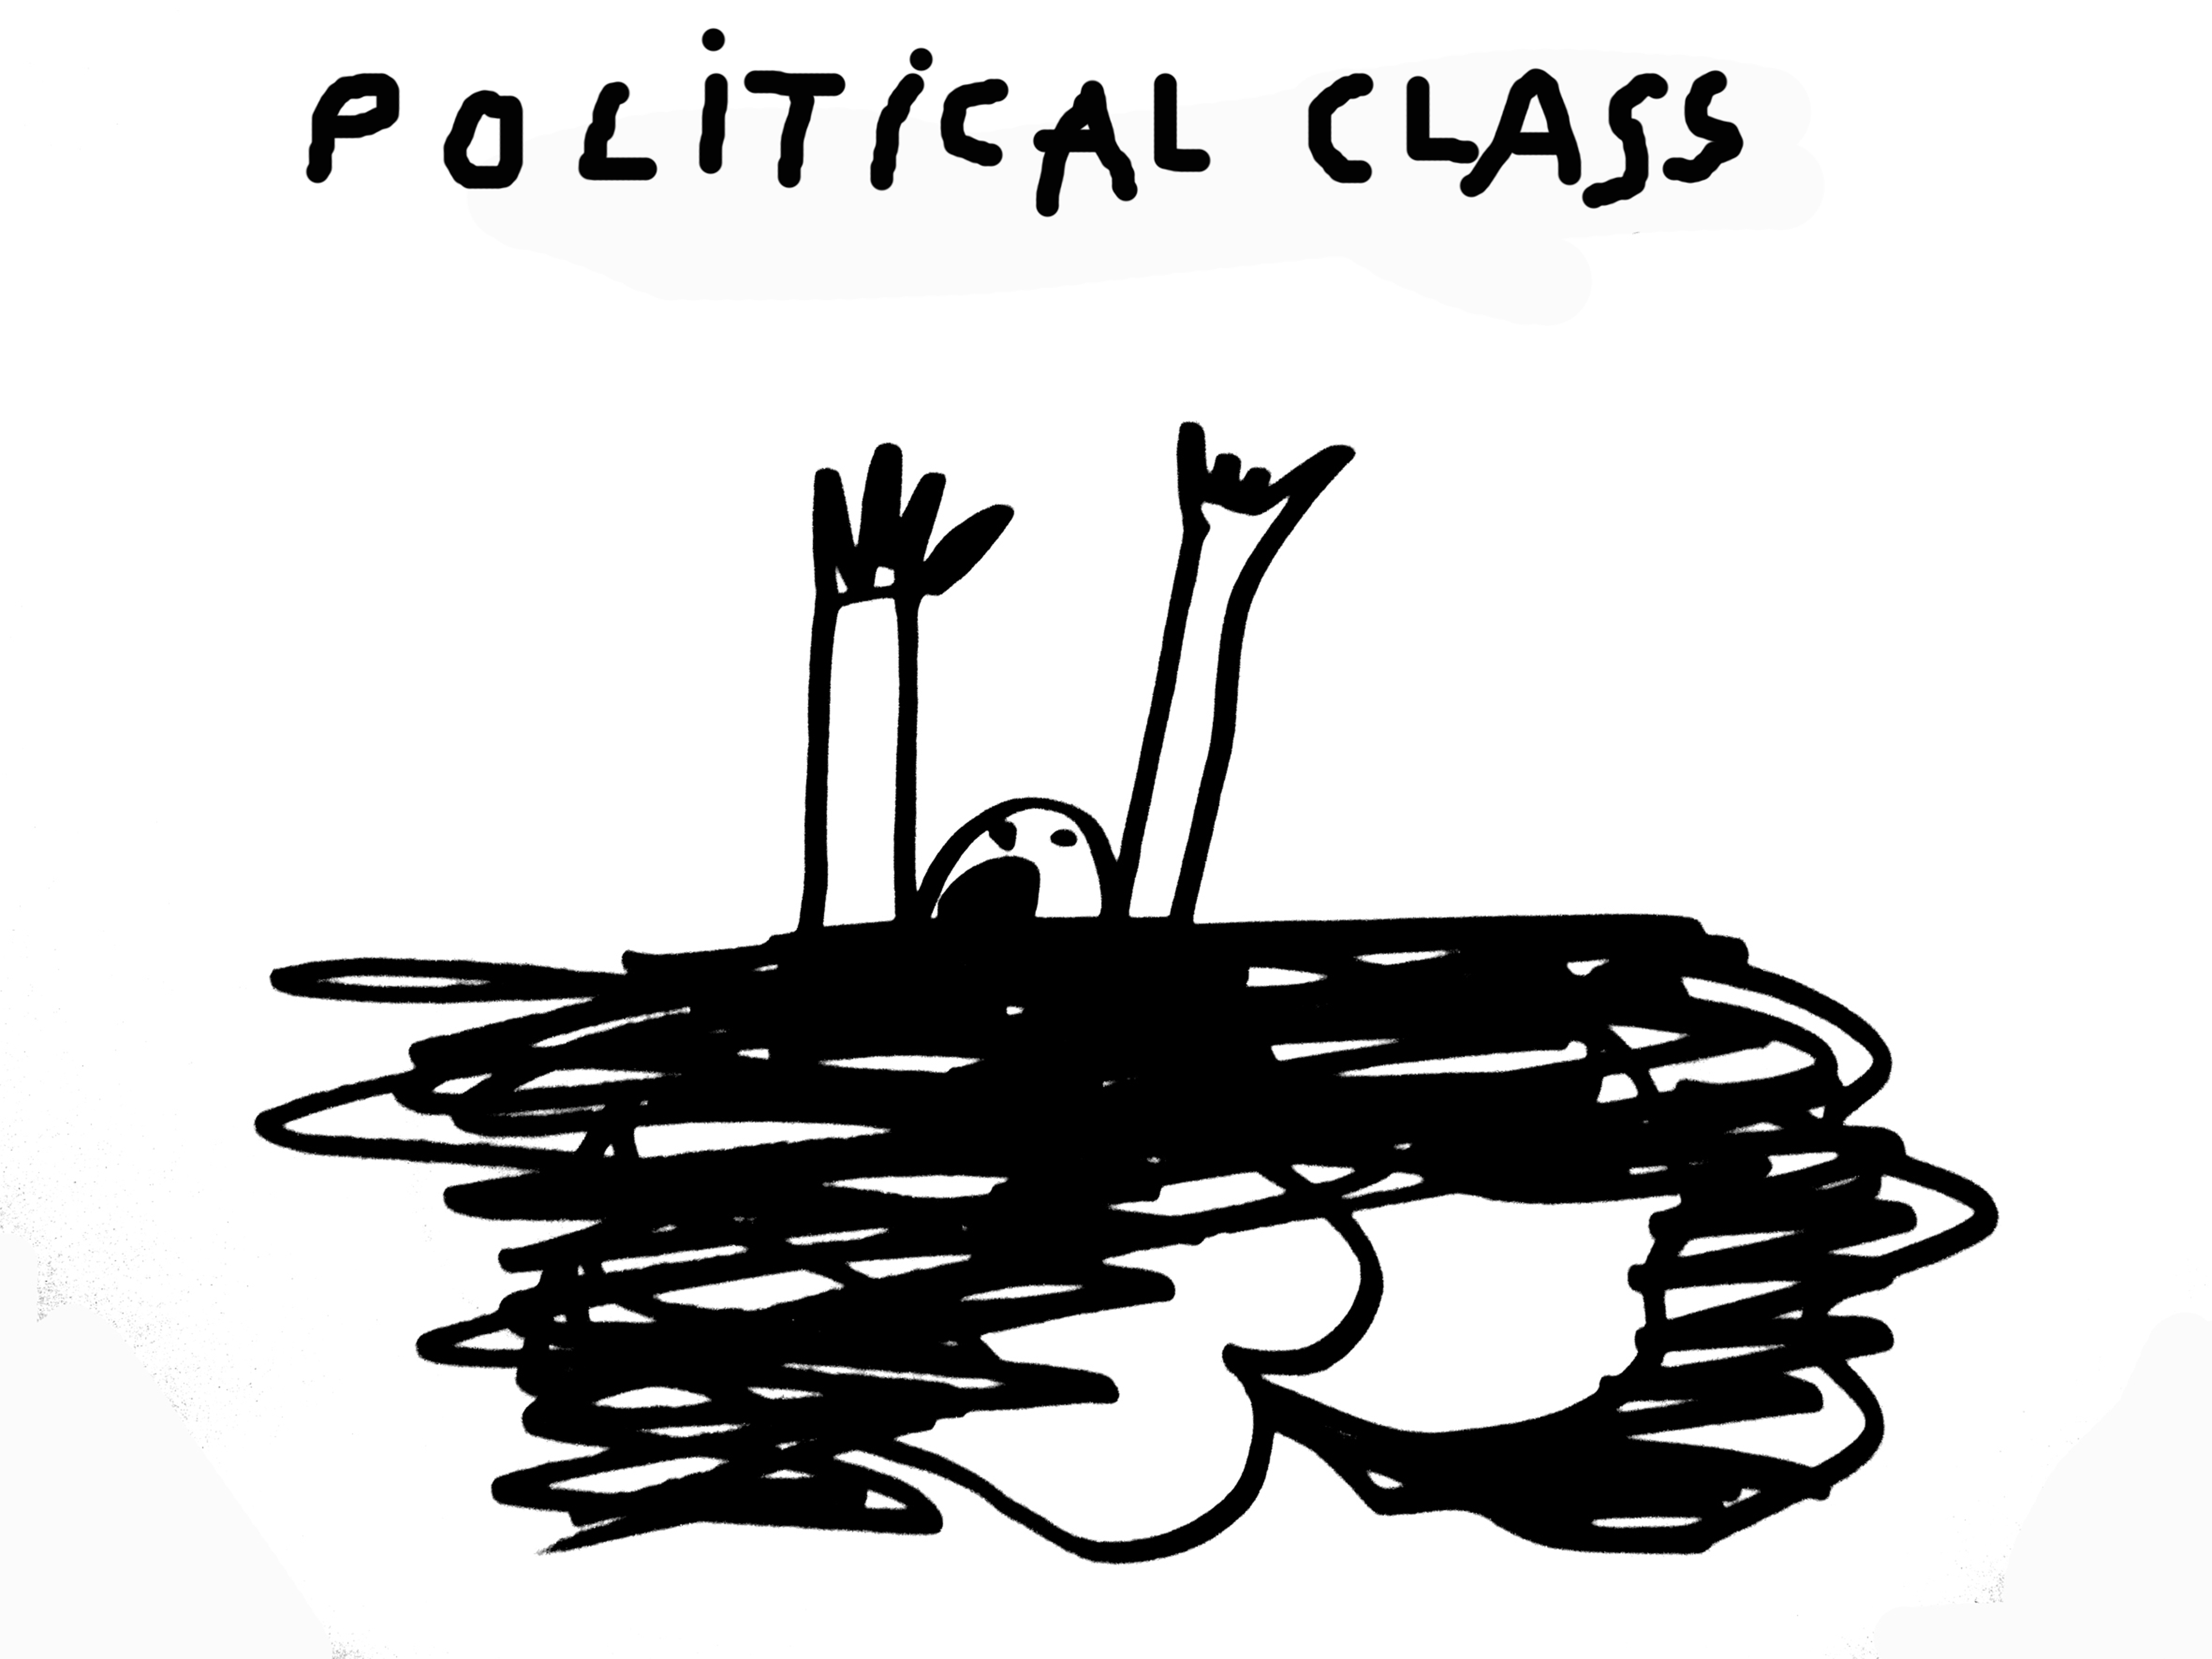 Dan Perjovschi, Drawing 1993-2012 (political class), variable dimension, variable technique, Courtesy the artist